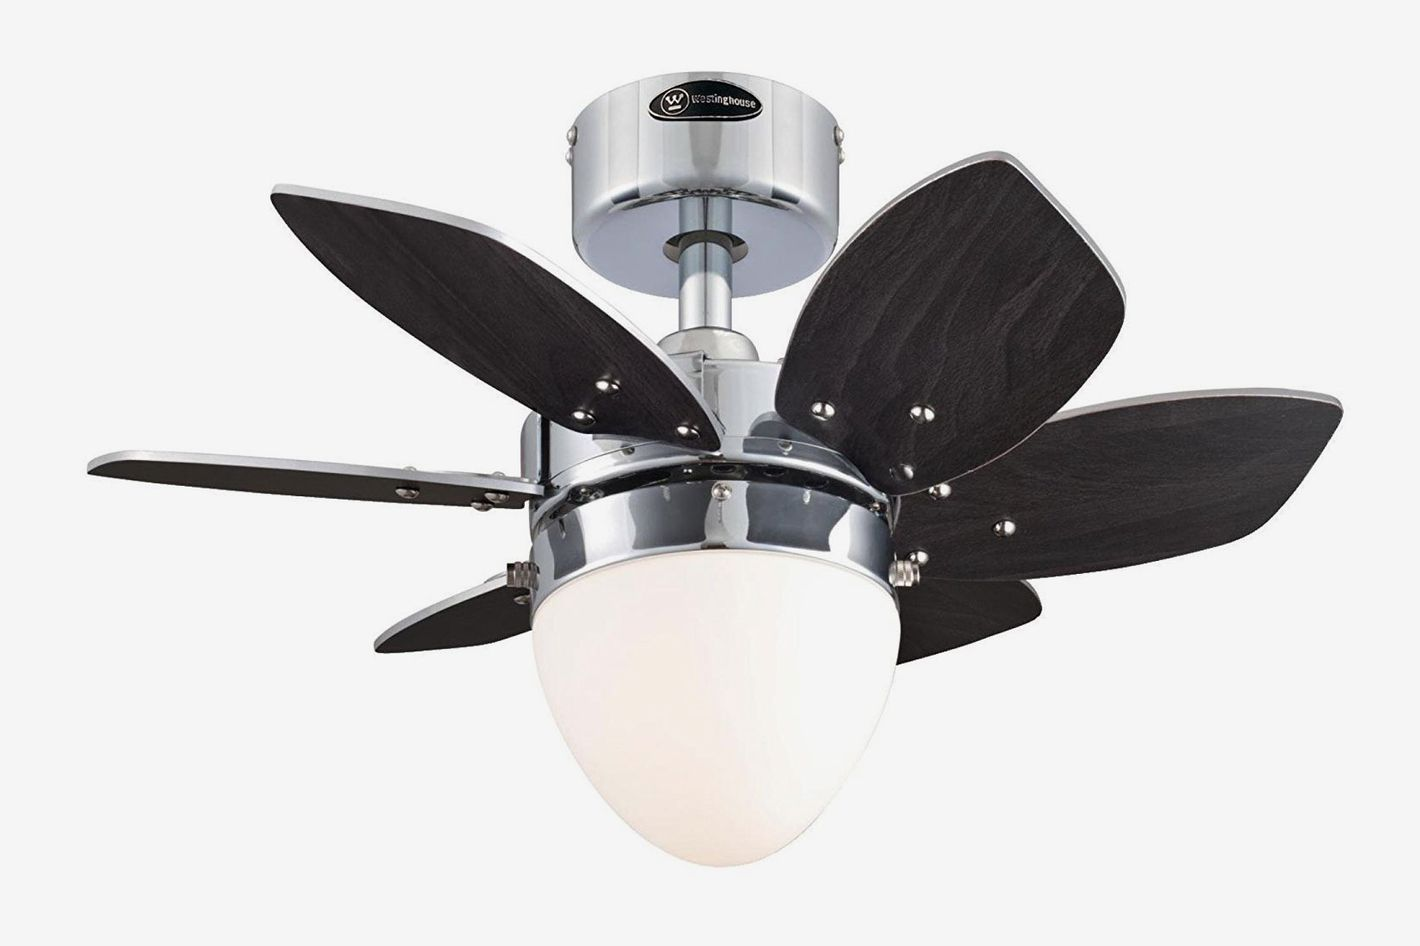 Best 24 Inch Indoor Ceiling Fan